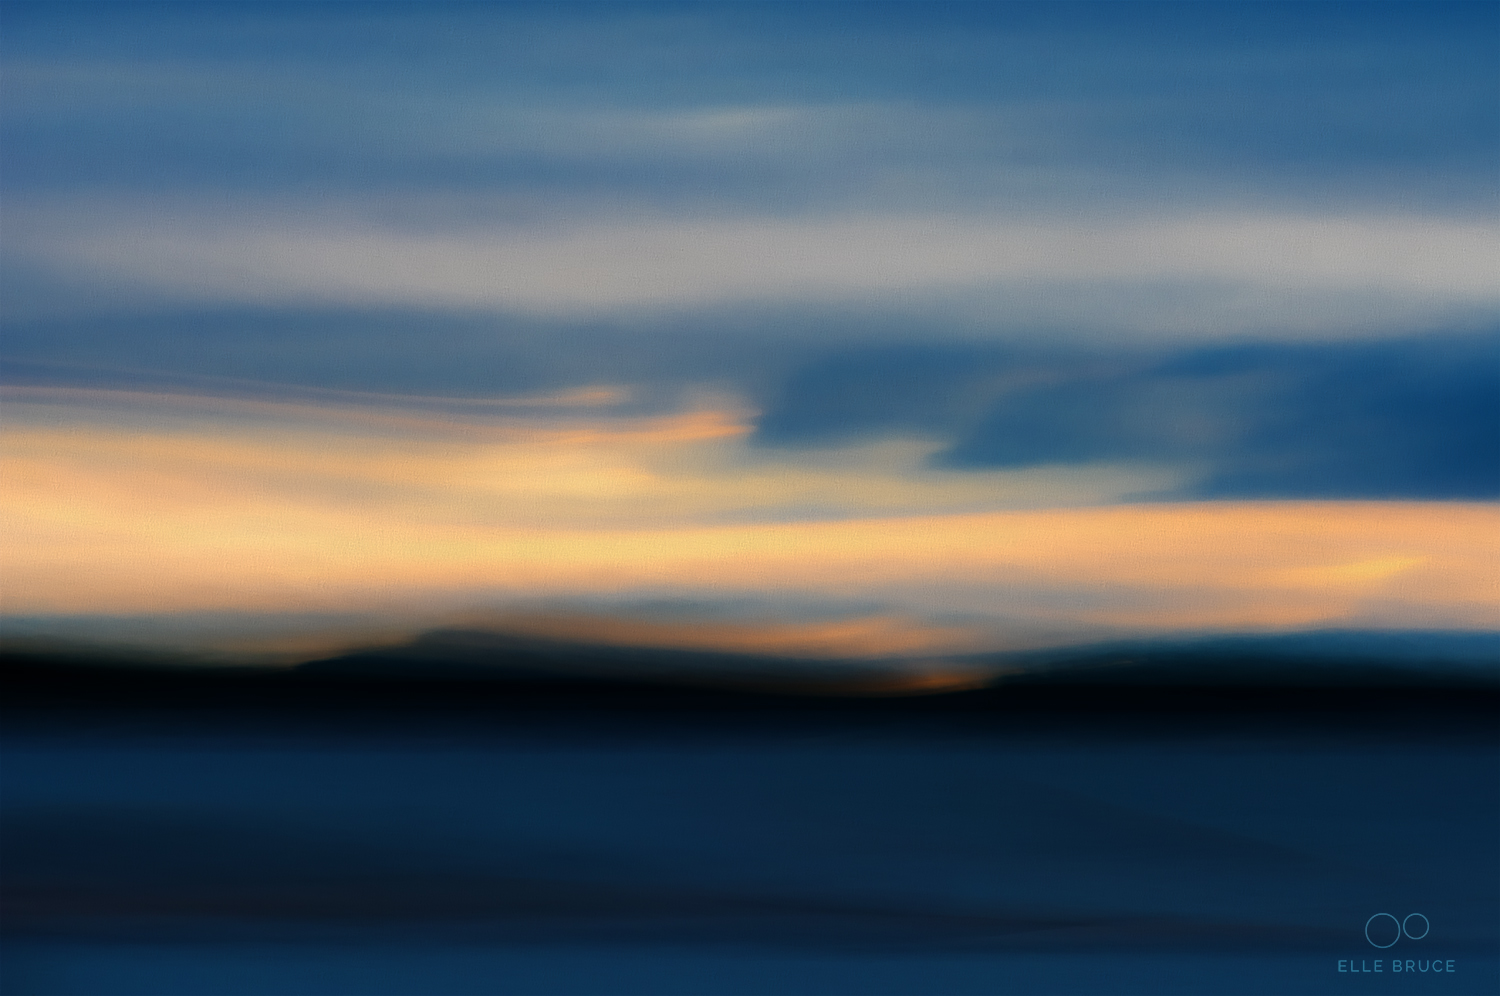 NORTHERN DAWN ©Elle Bruce  The soft and gentle nature of this image I created of the North Channel in Ontario reminds me of images I have seen made by  Christopher Armstrong  (known as christofink on Instagram).